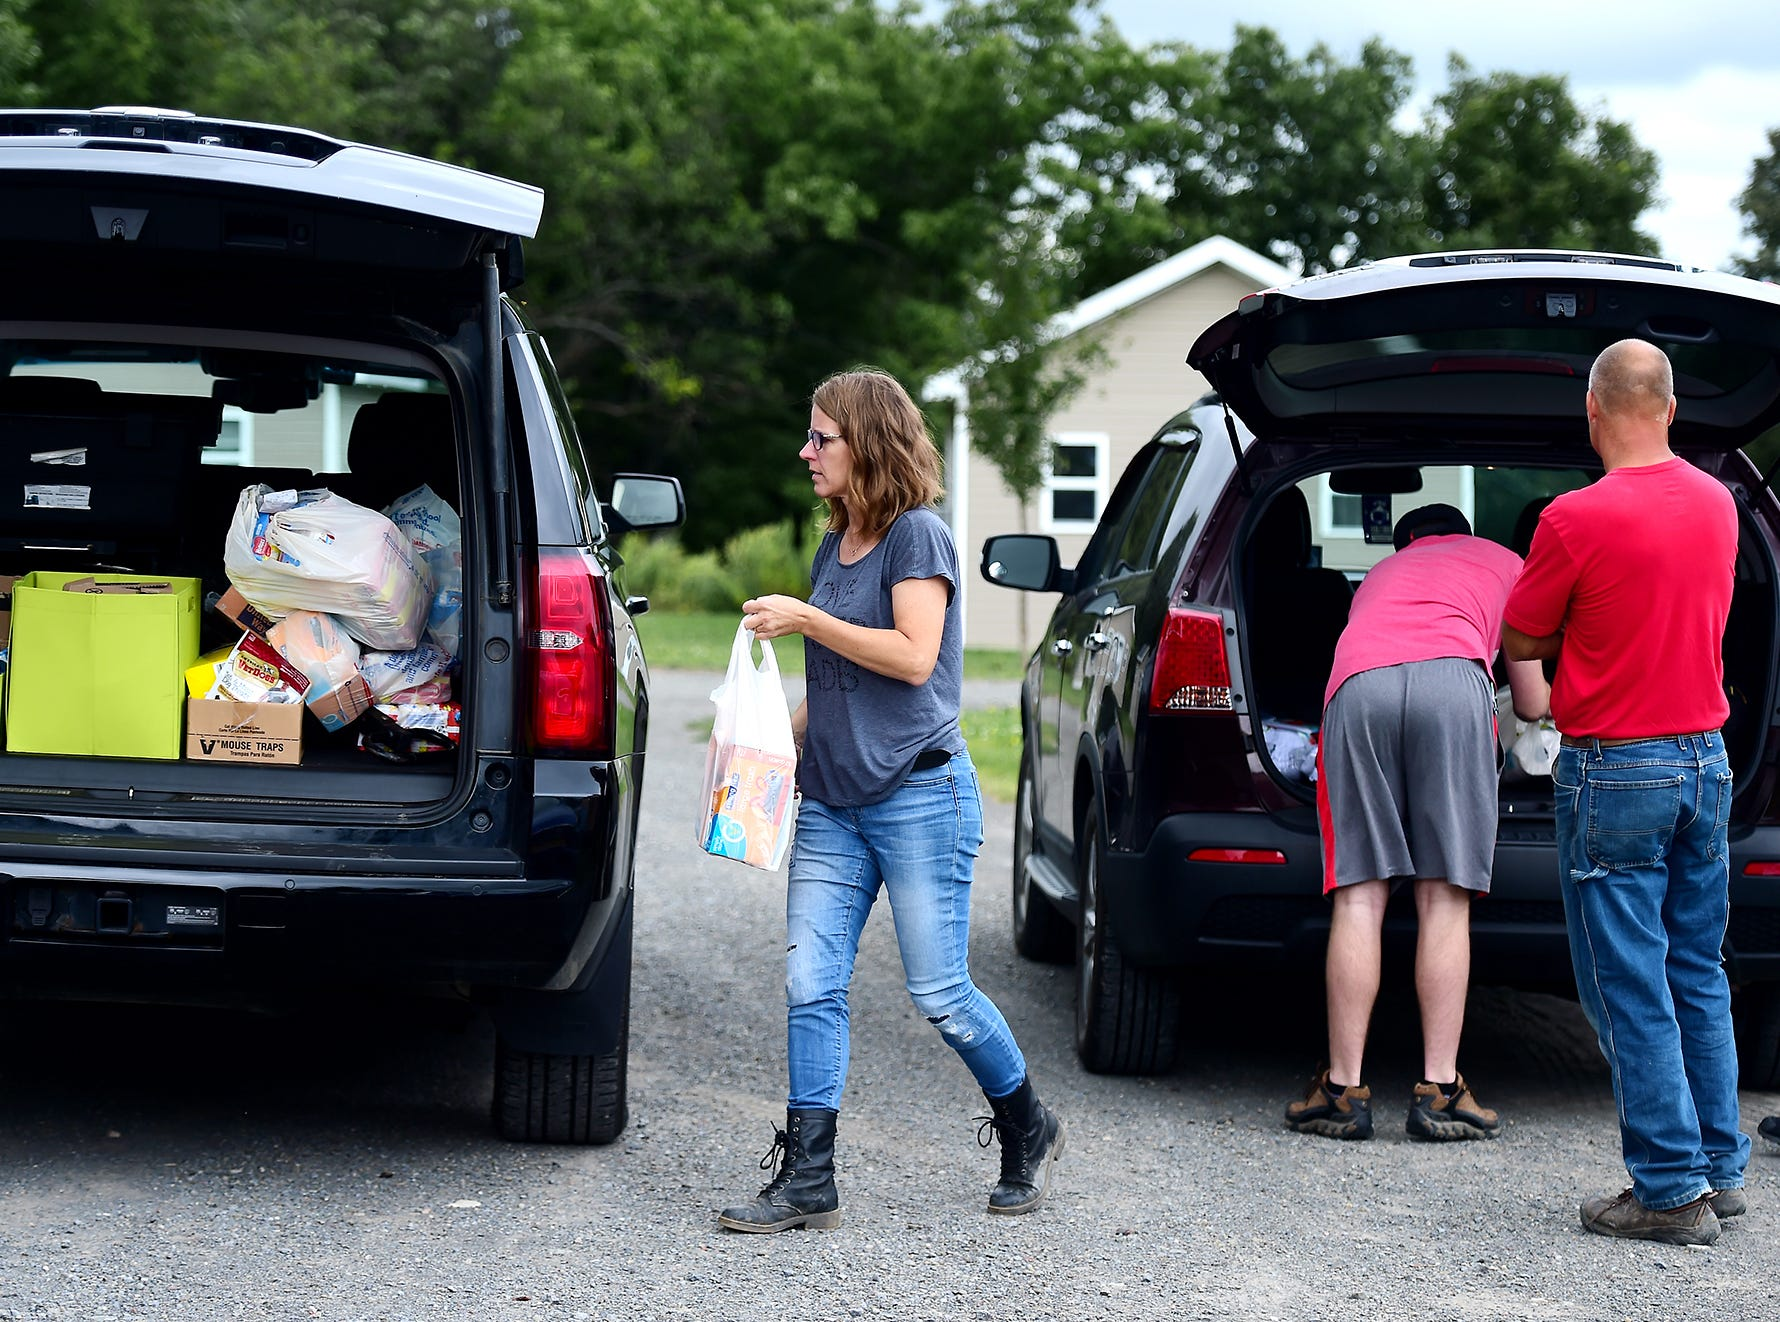 """Deb Wilke of Horseheads loads supplies into her car which she will deliver to residents of """"The Jungle"""" in Ithaca on August 31, 2018. Wilke, along with her husband and four children, help the homeless residents of The Jungle by delivering food and supplies, providing rides, taking residents out to dinner and to do laundry, and helping them find permanent housing."""